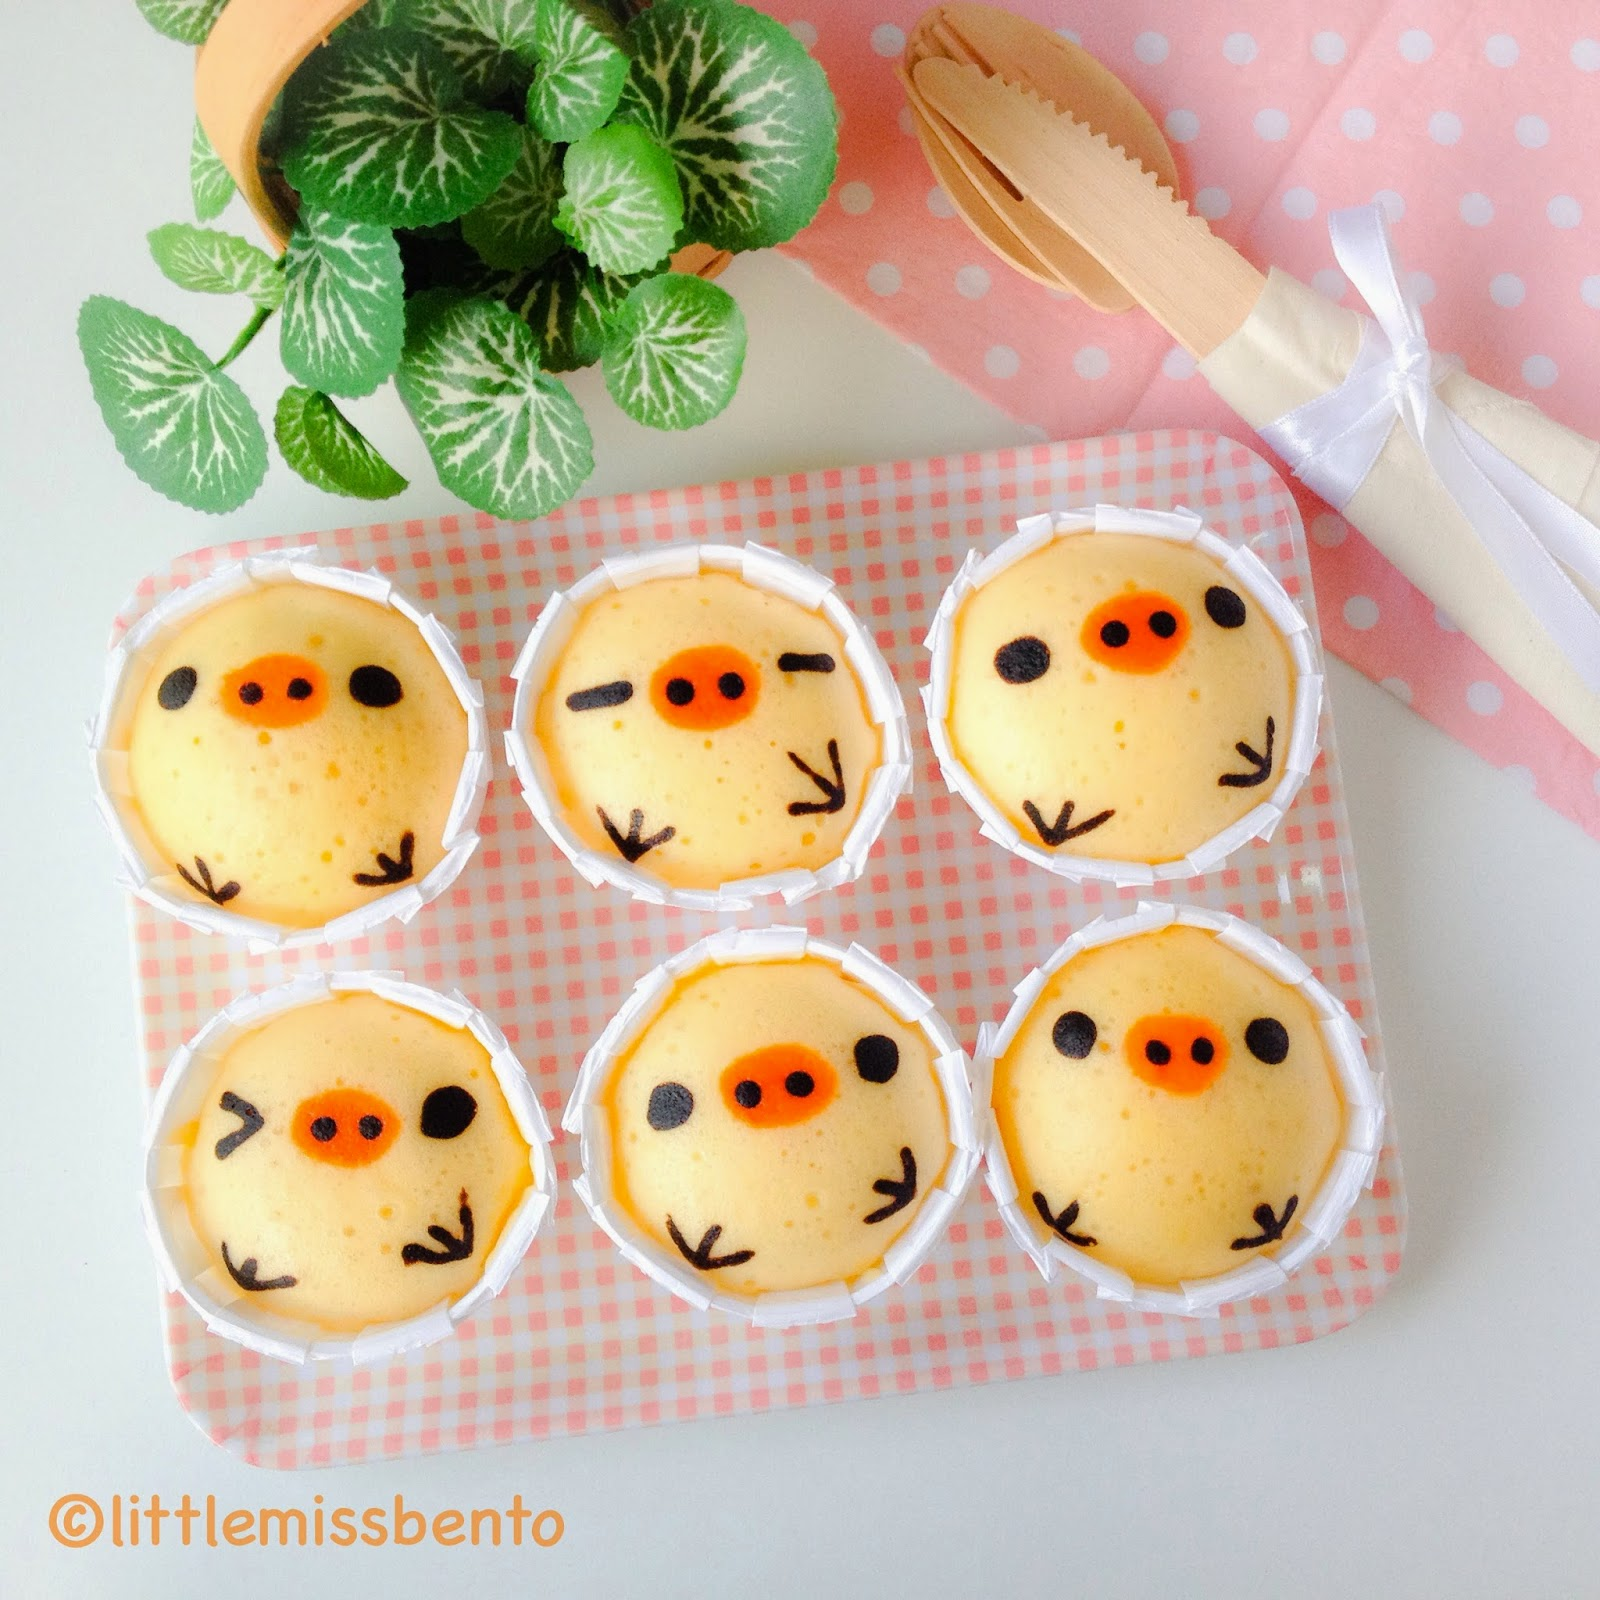 Recipe for kiioritori japanese steam cakes mushi pan little miss bento - Stylish cooking ...